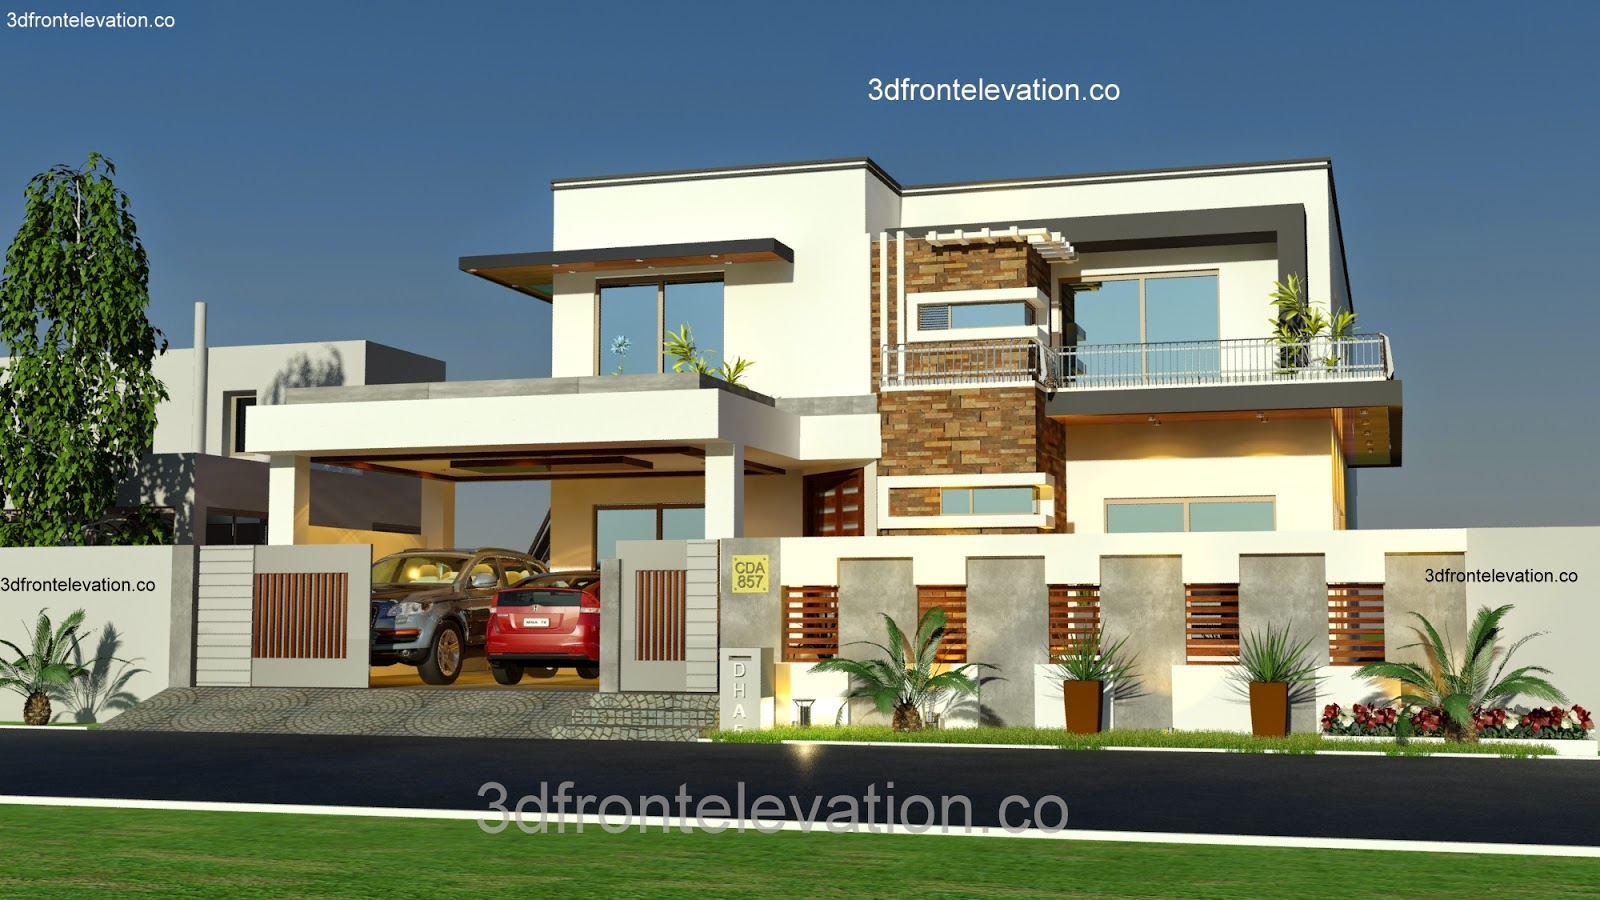 Pakistan Modern Homes Front Designs 3D Front Elevation.com: 1 Kanal House Plan layout 50' X 90' 3D Front Elevation CDA Islamabad ...